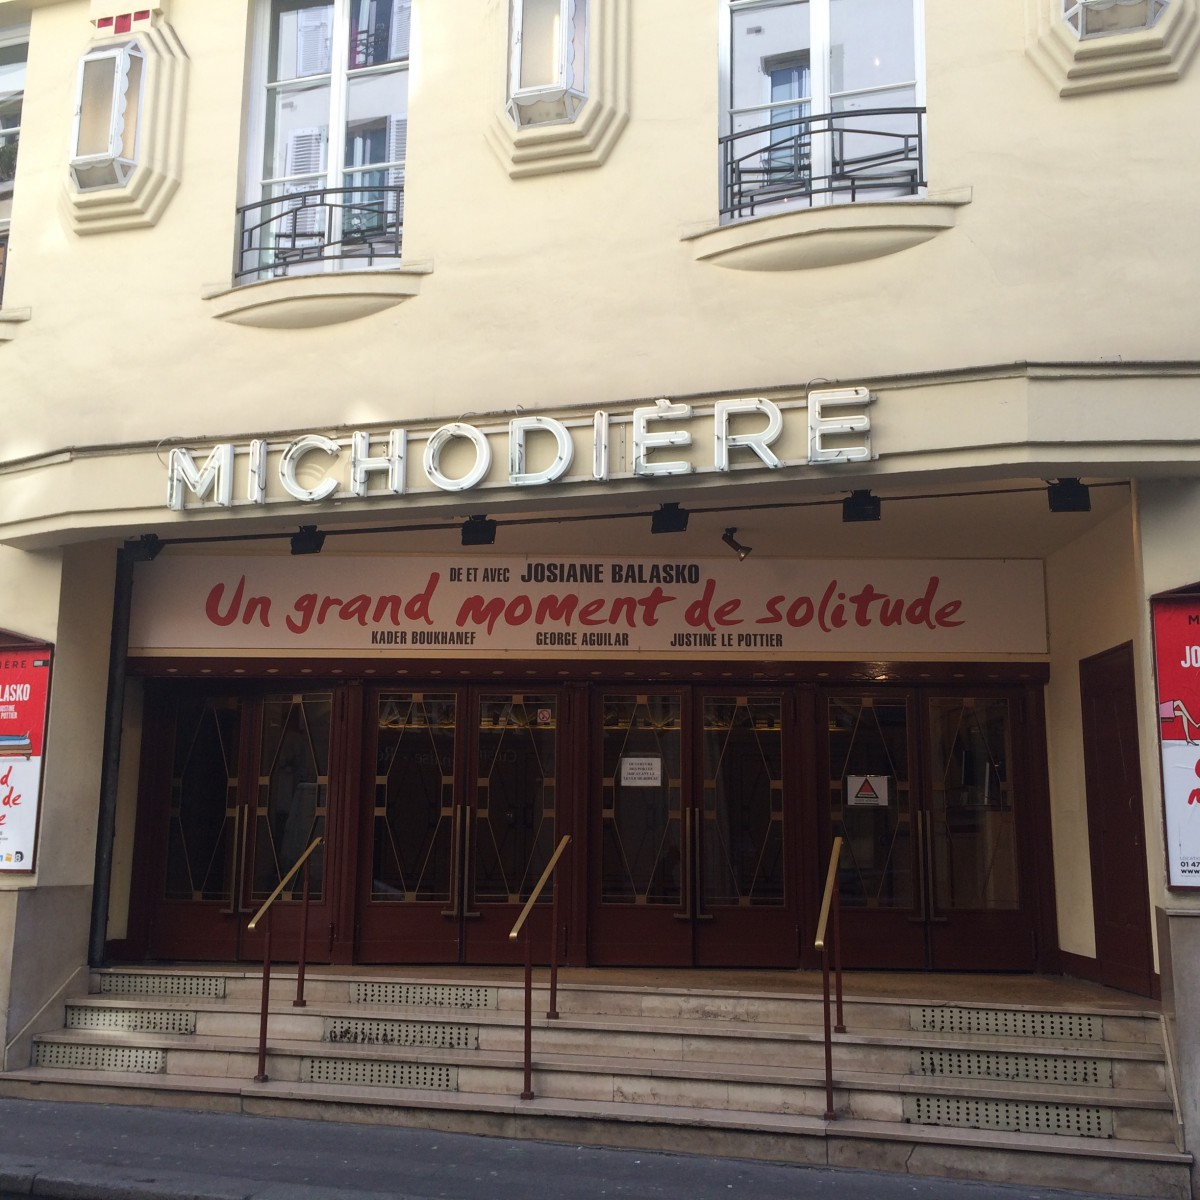 Theatre Michodiere - where we were staying in Paris. Great spot.